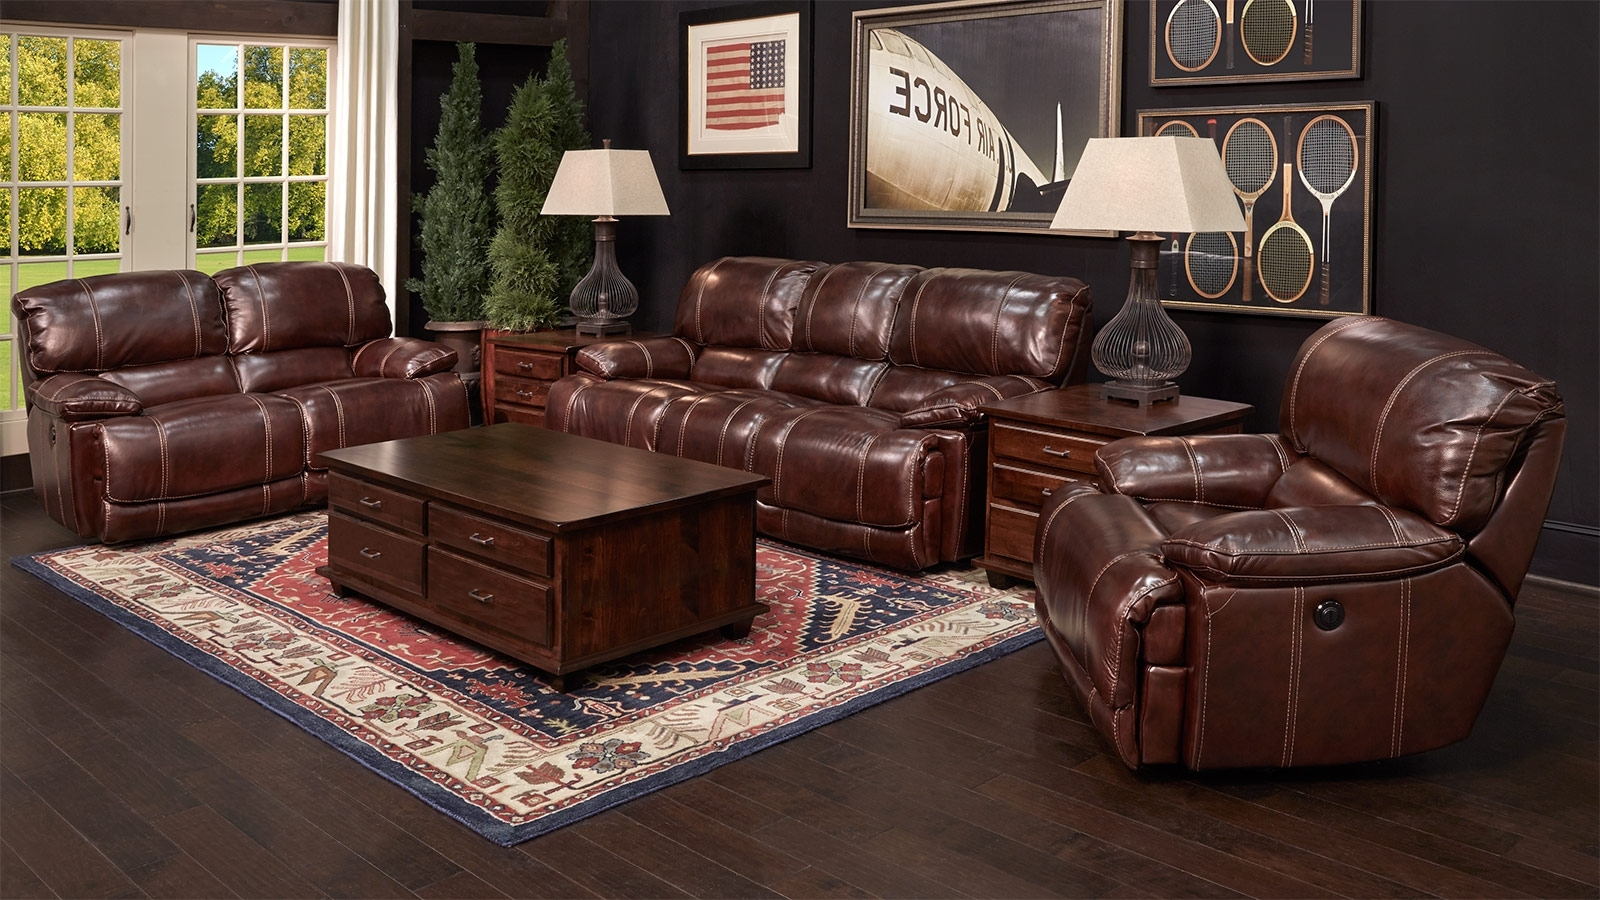 Newest Gallery Furniture Sectional Sofas Intended For Flexsteel Furniture / Gallery Furniture Store, (View 10 of 20)